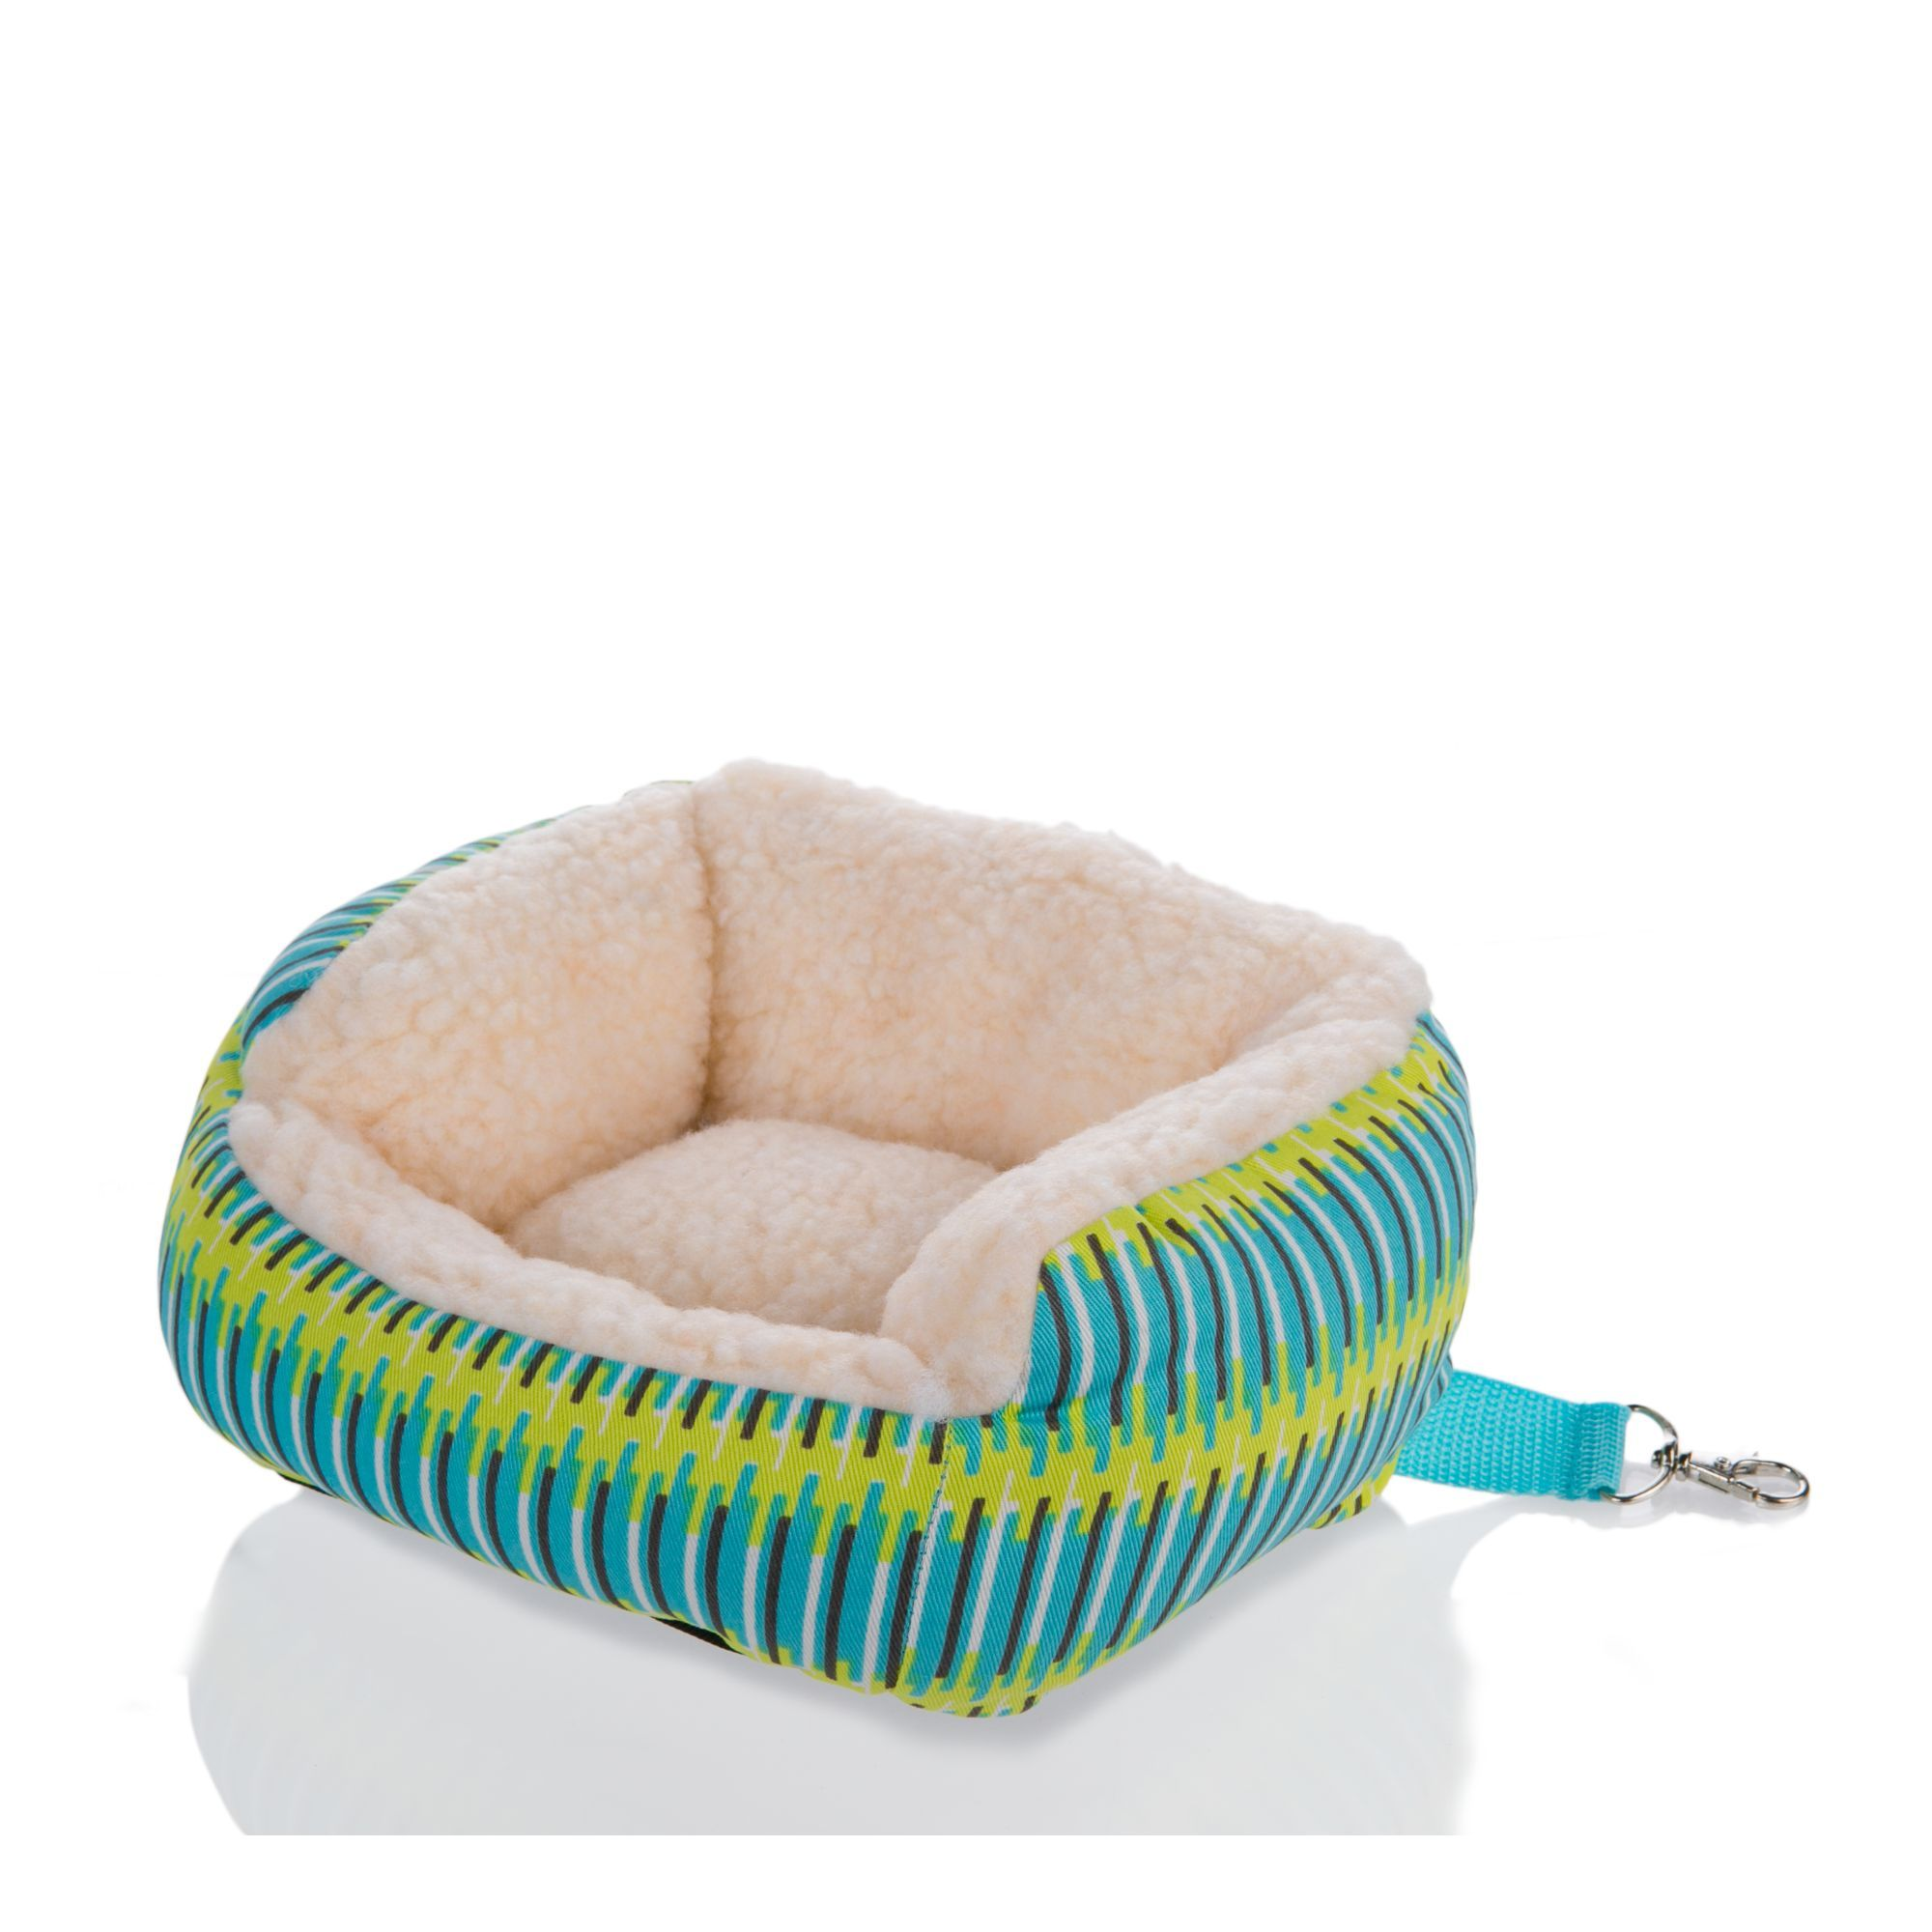 All Living Things® Small Animal Bed Small pets, Pet beds